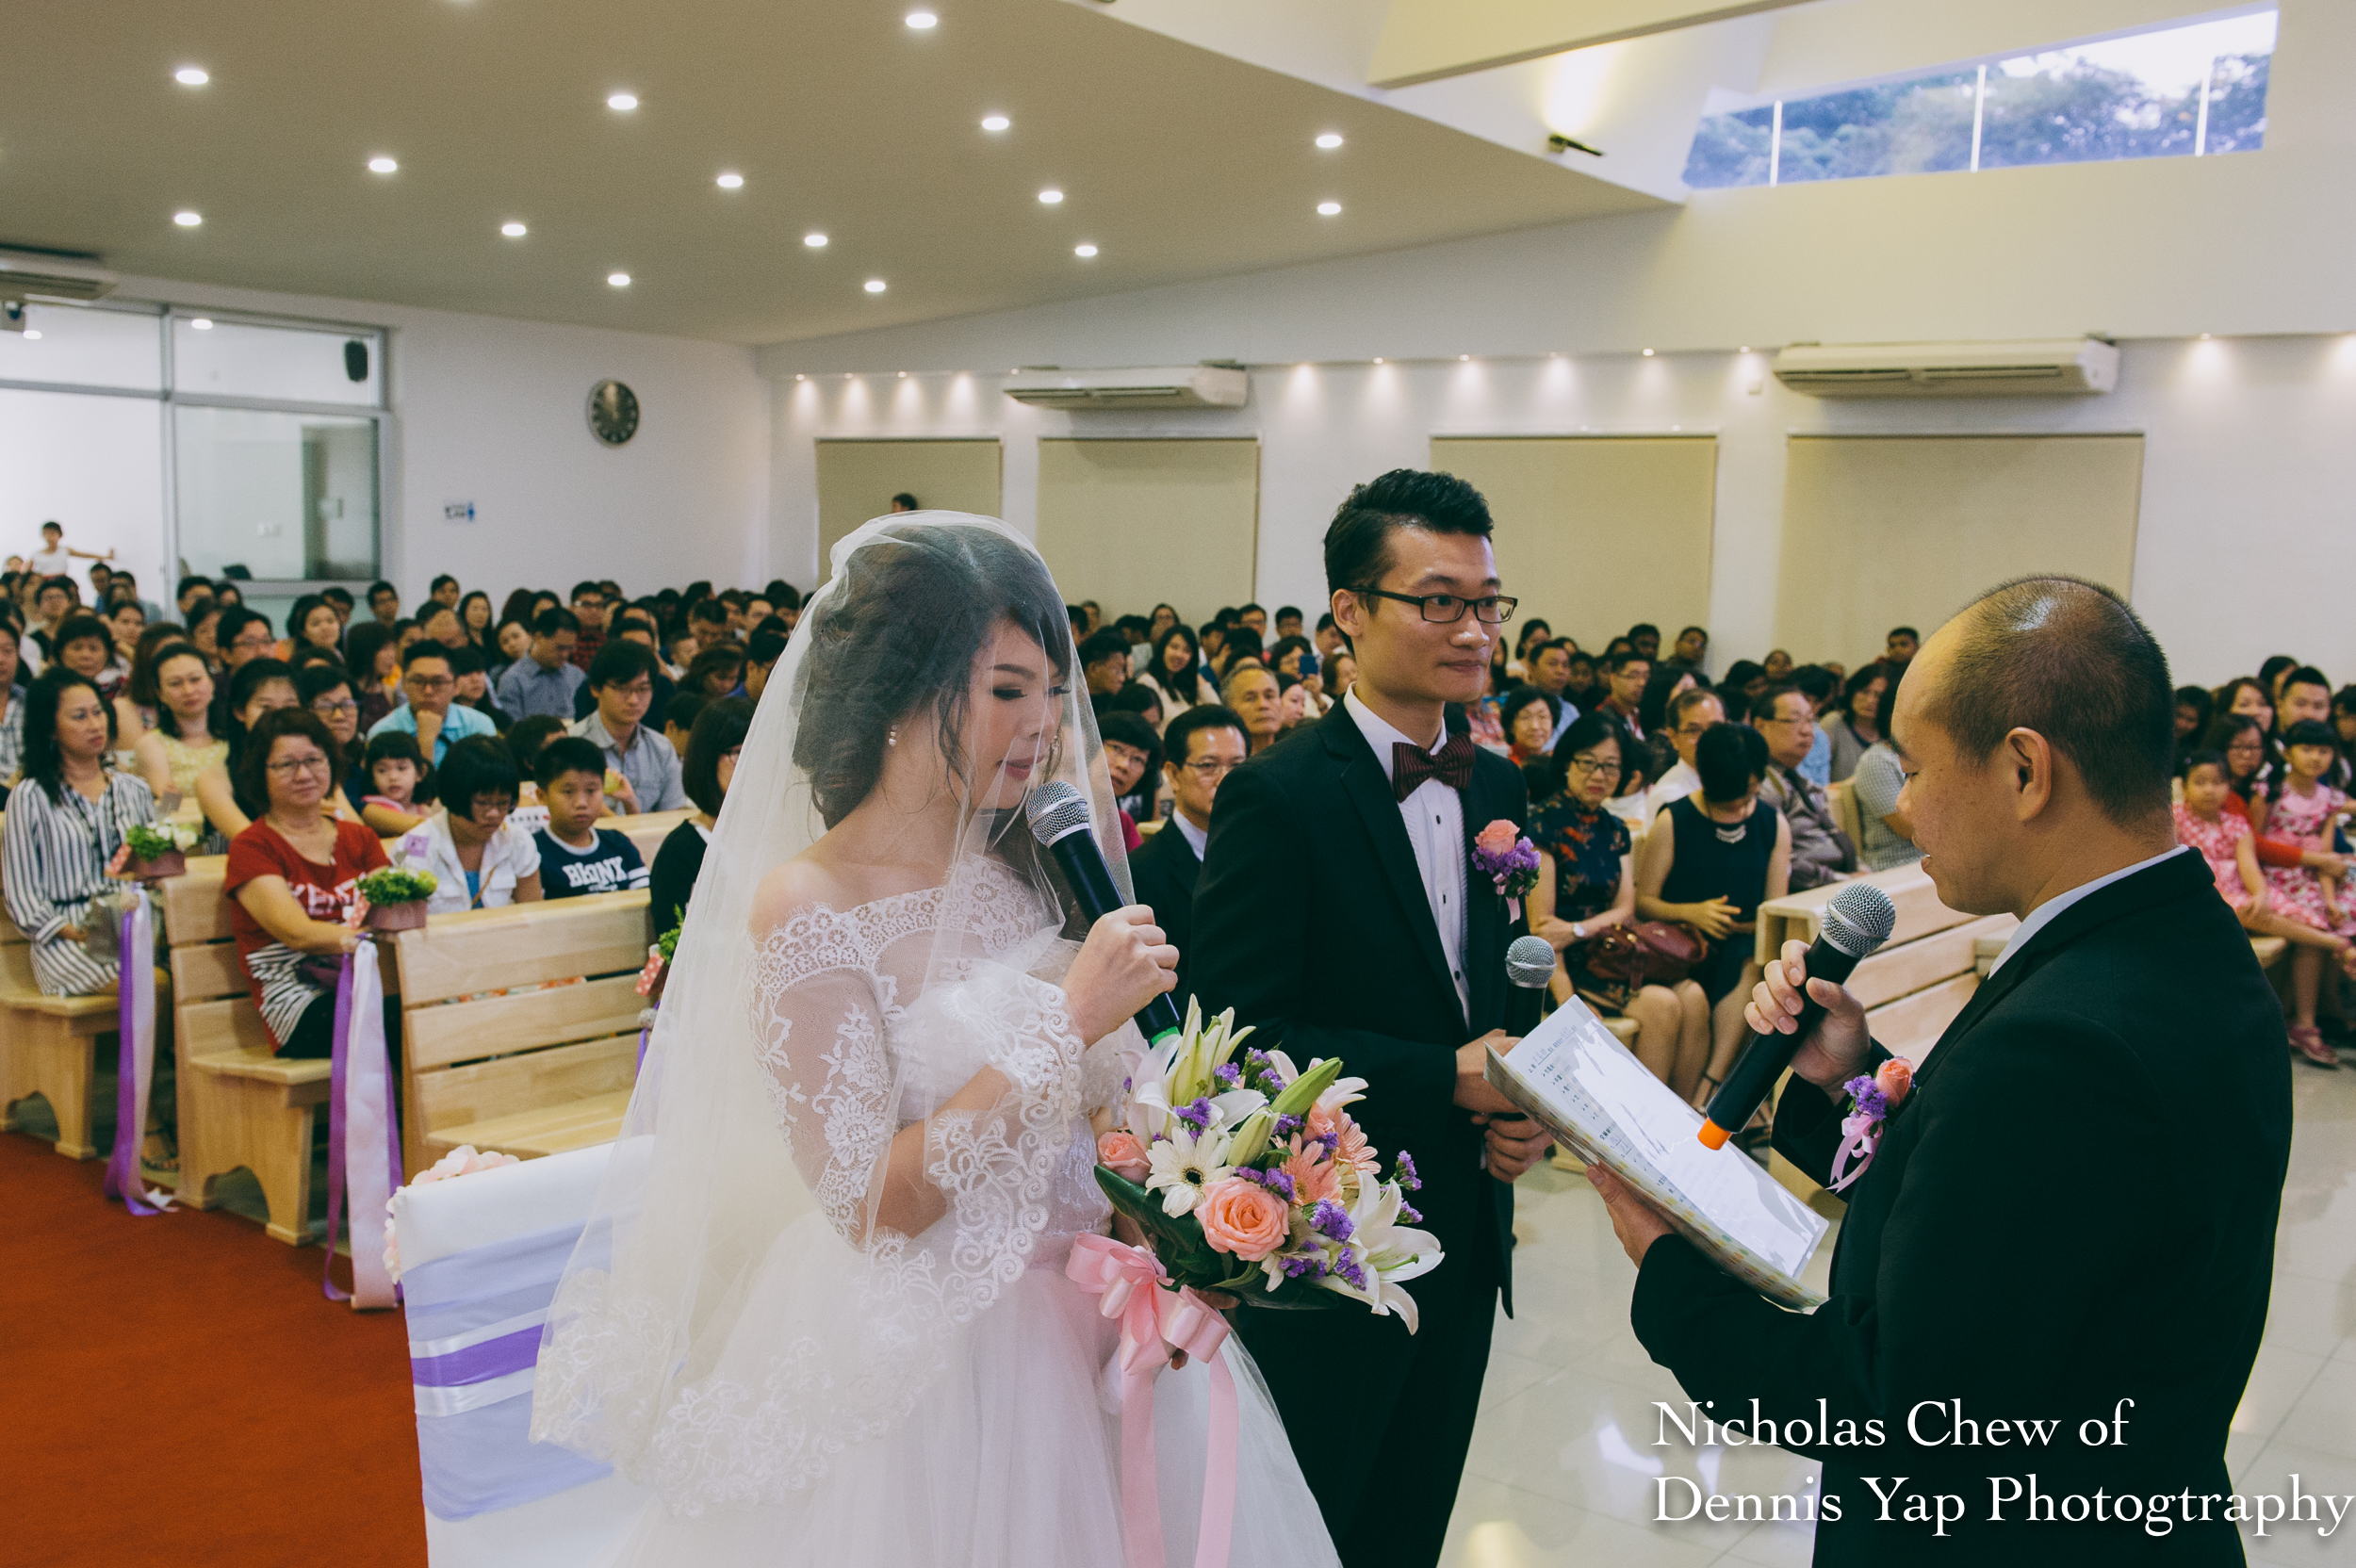 Nicholas Chew profile wedding natural candid moments chinese traditional church garden of dennis yap photography006Nicholas Profile-2.jpg